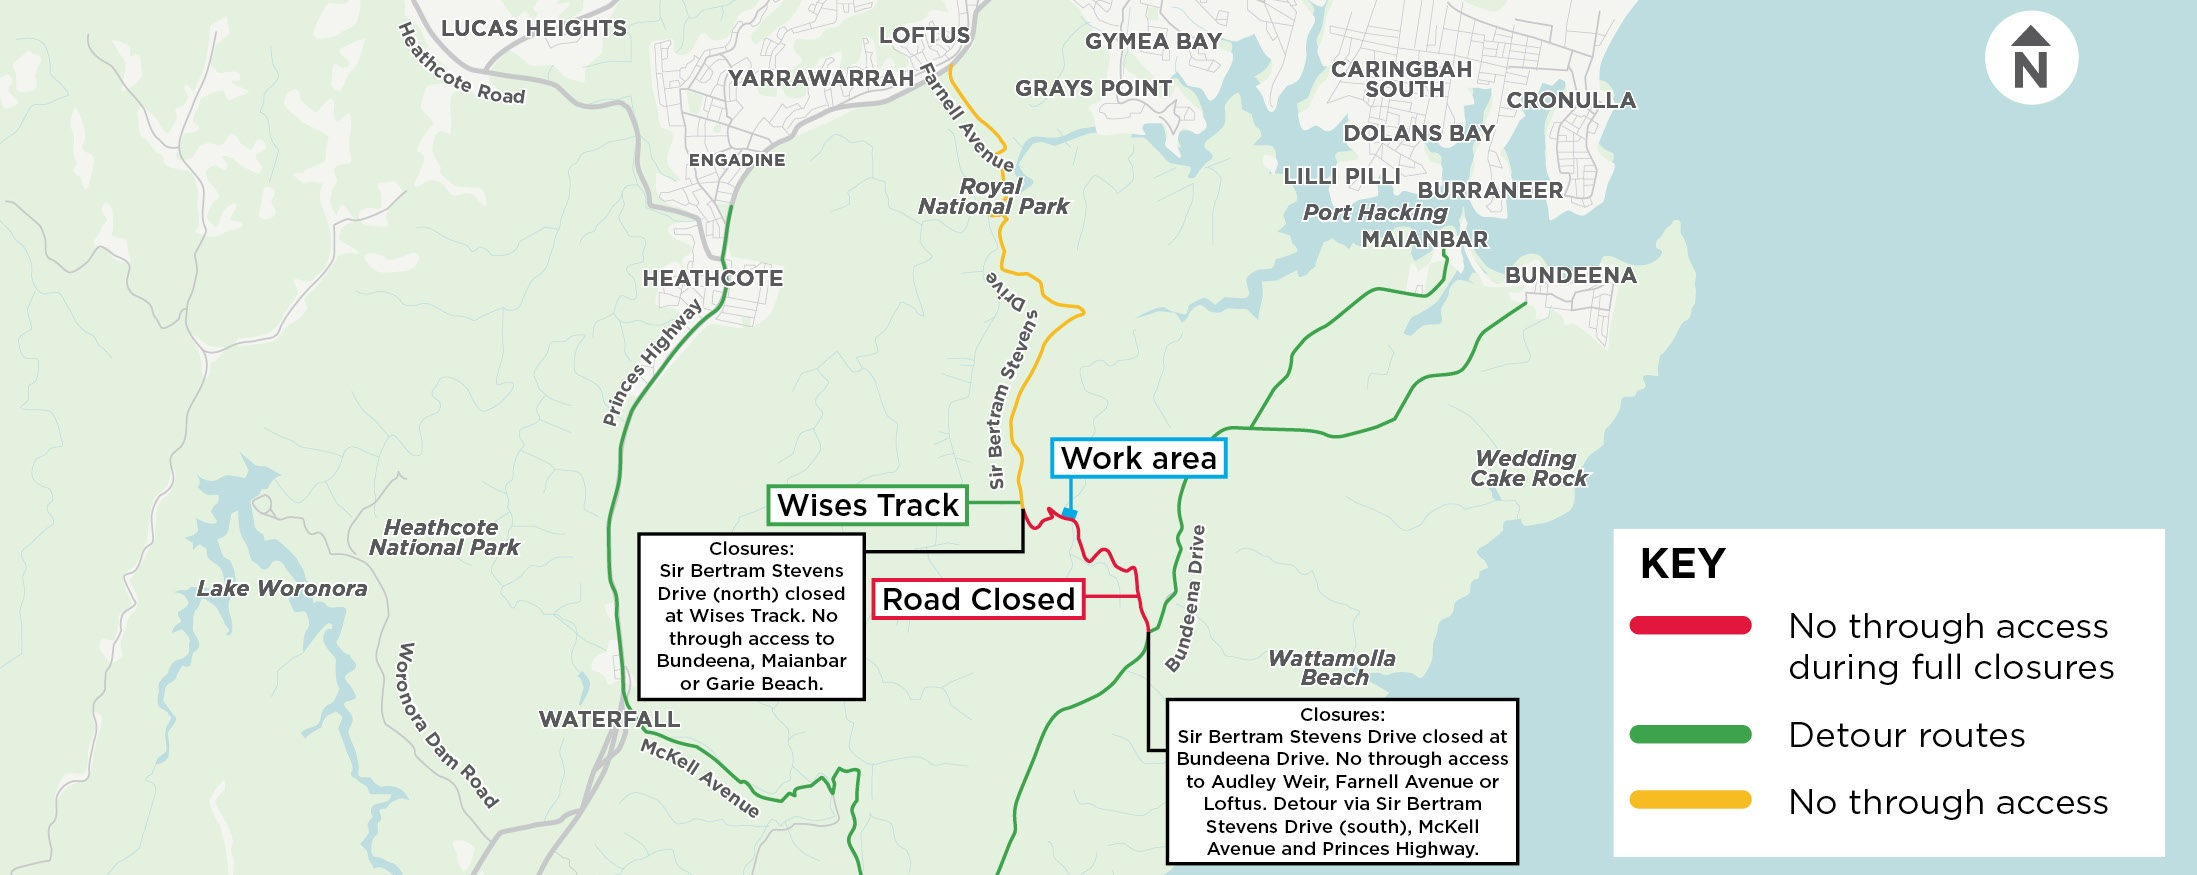 Flat Rock Bridge Closure